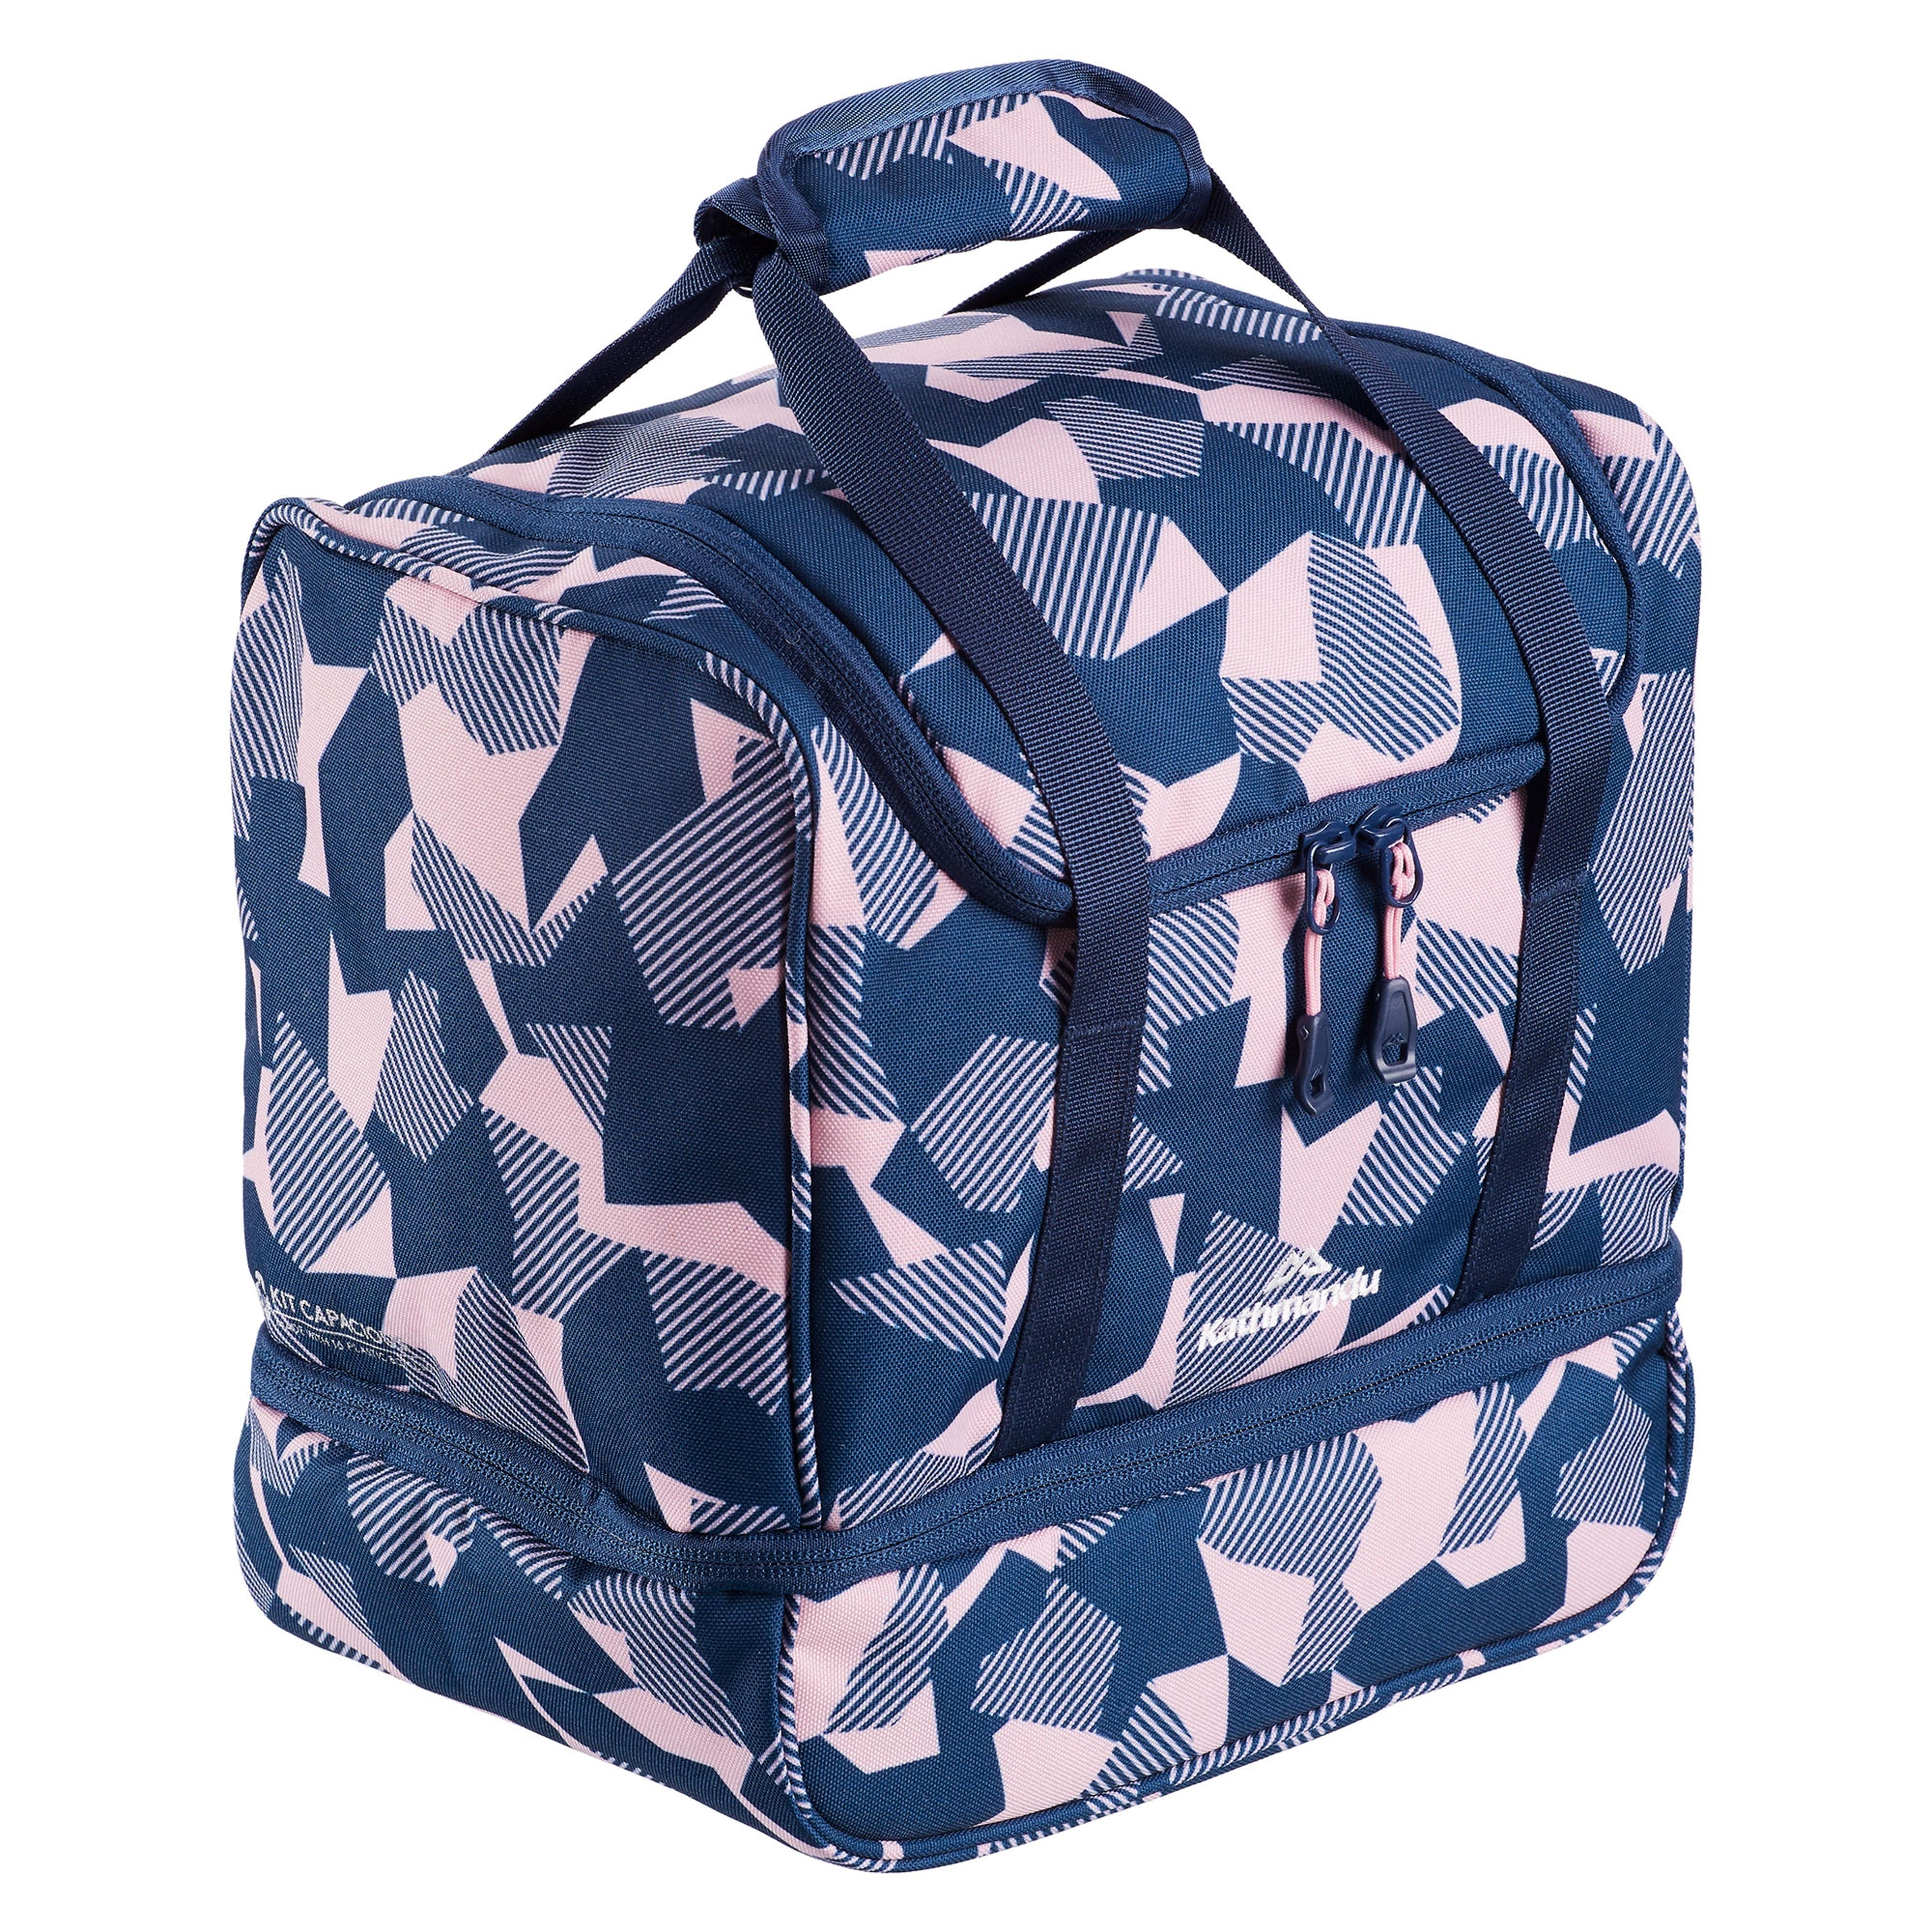 Toiletry Bags   Mens   Womens Travel Makeup   Cosmetic Bags   AU 9ae31ed766